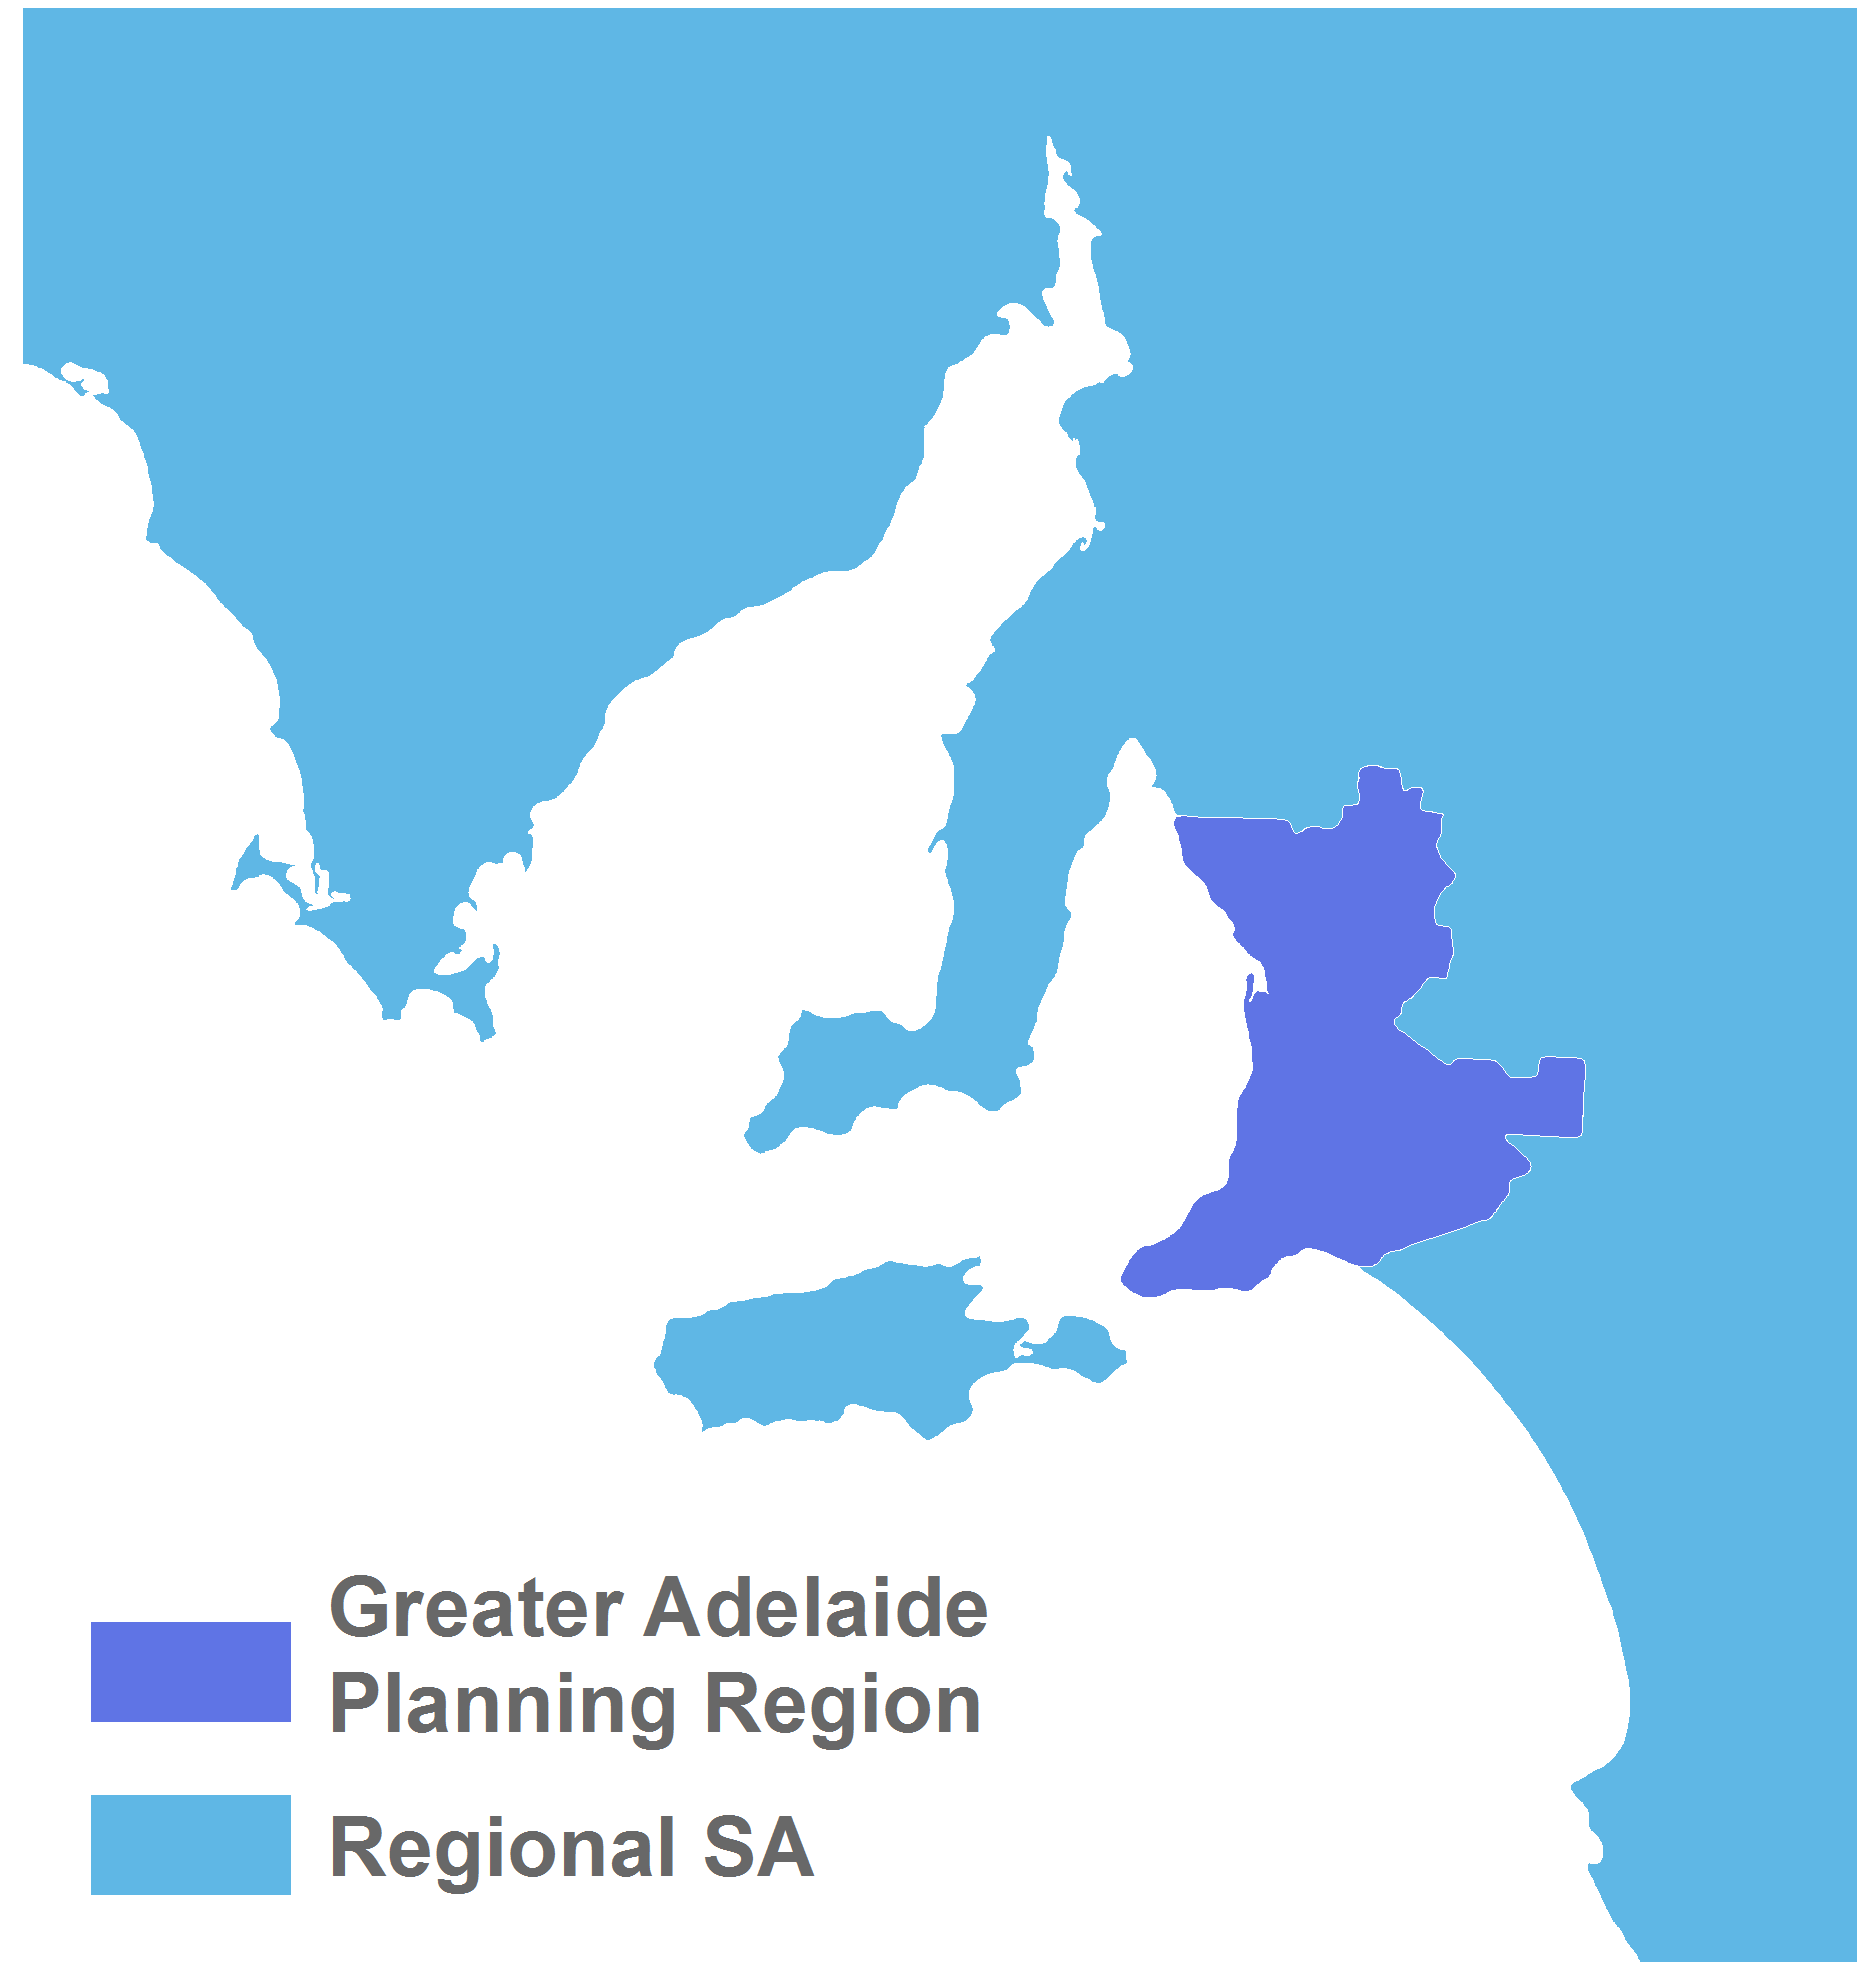 Map of Greater Adelaide Planning Region and Regional SA